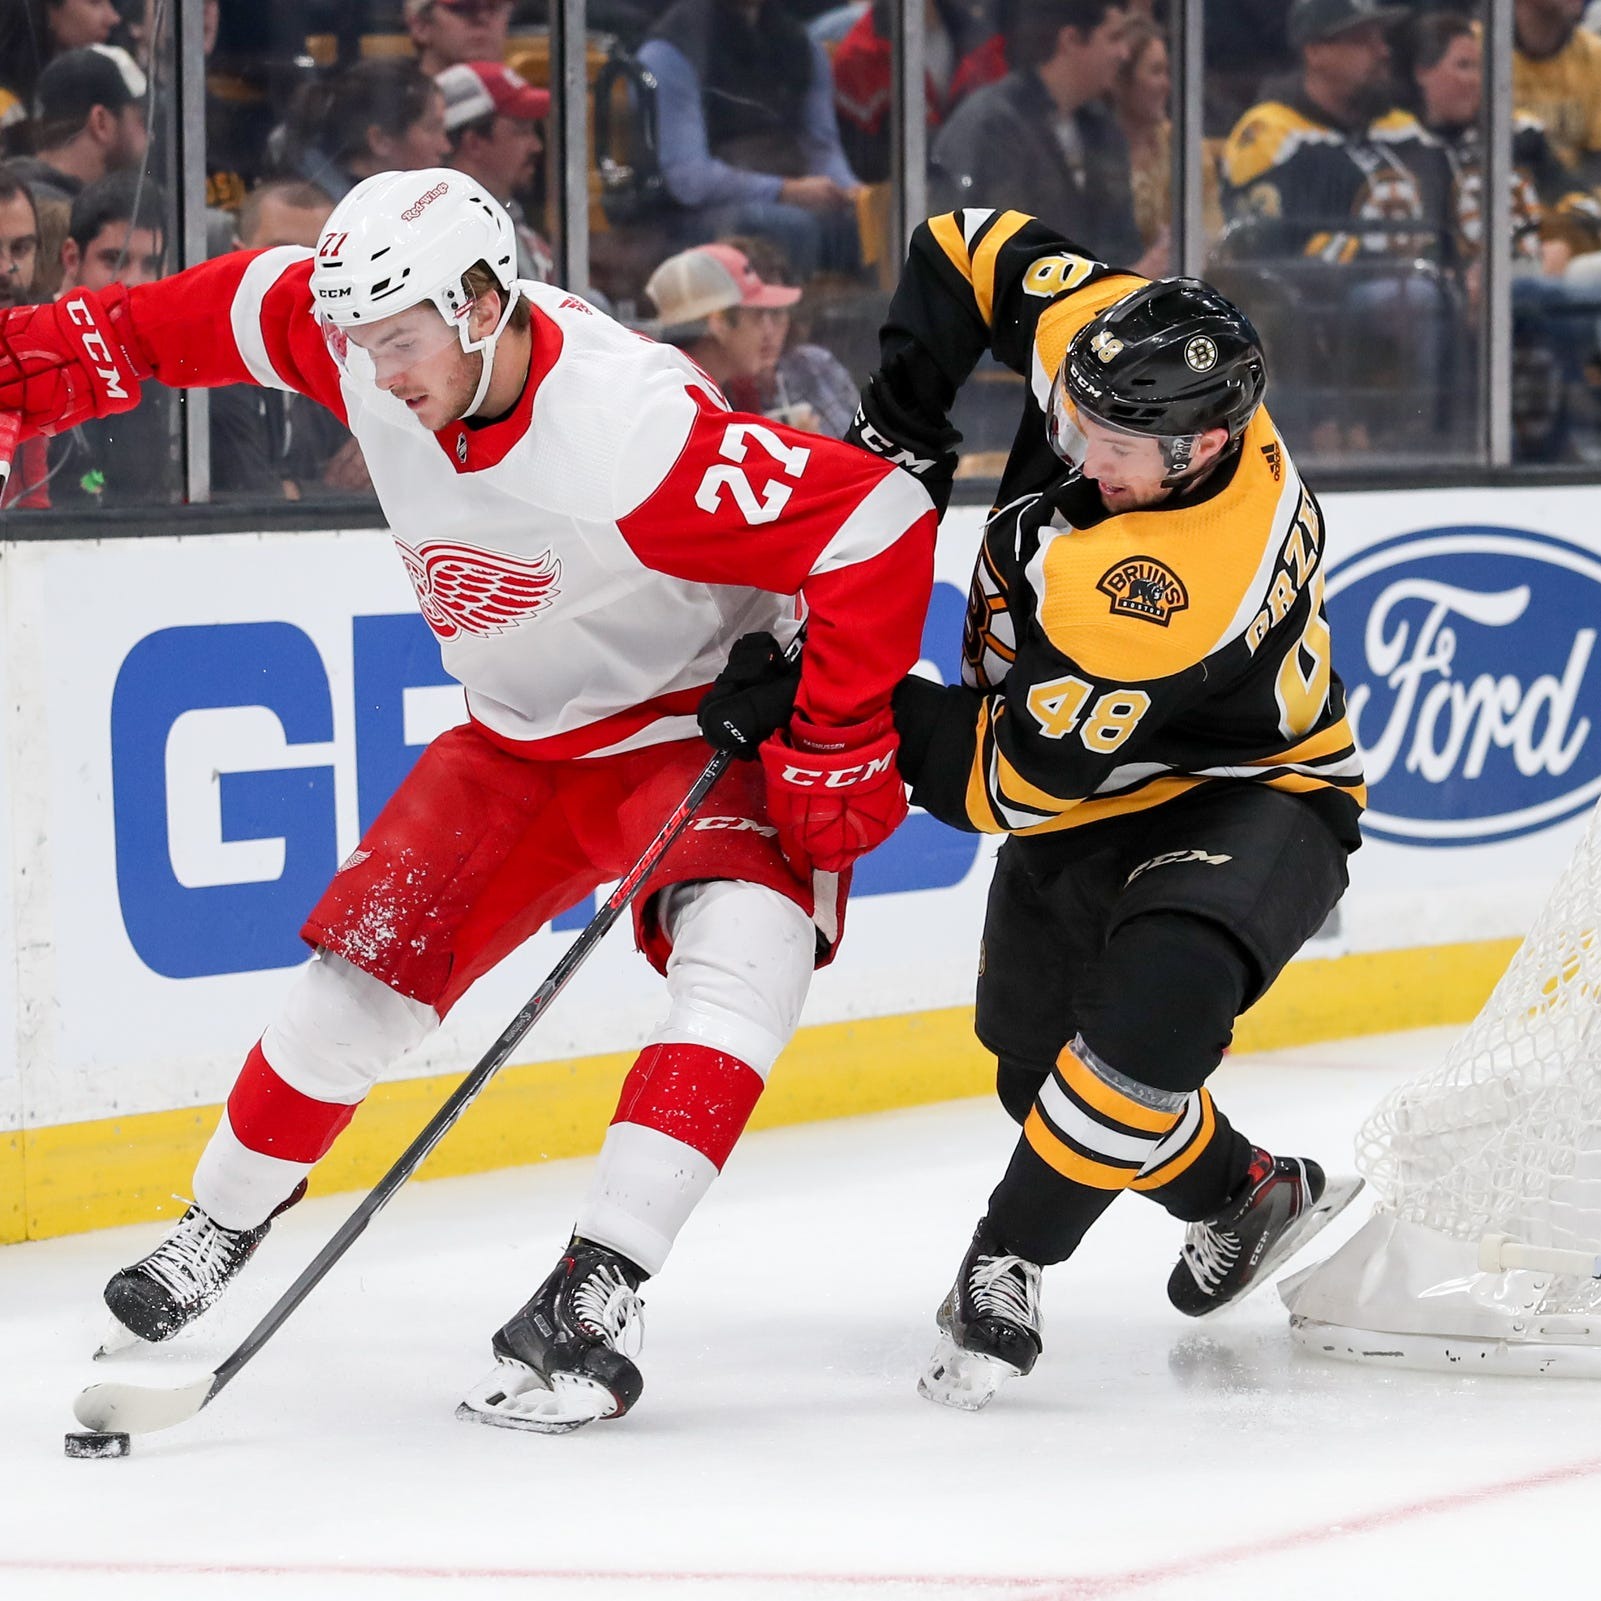 Detroit Red Wings may bench rookie Michael Rasmussen. Why that matters